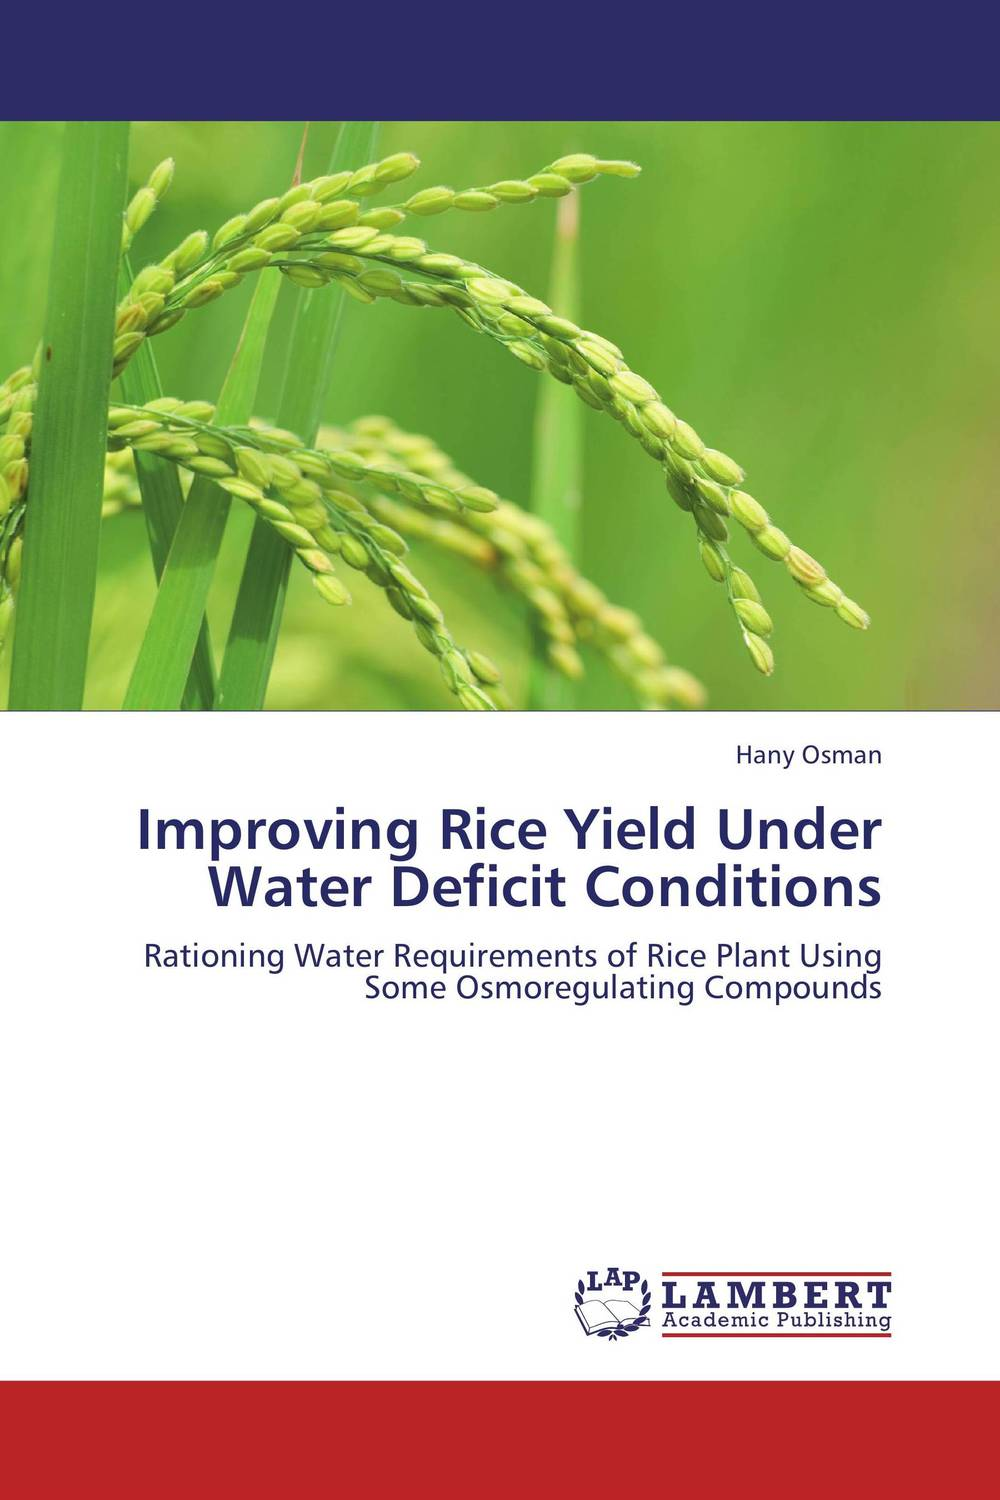 Improving Rice Yield Under Water Deficit Conditions deciphering the role of yap4 phosphorylation under stress conditions